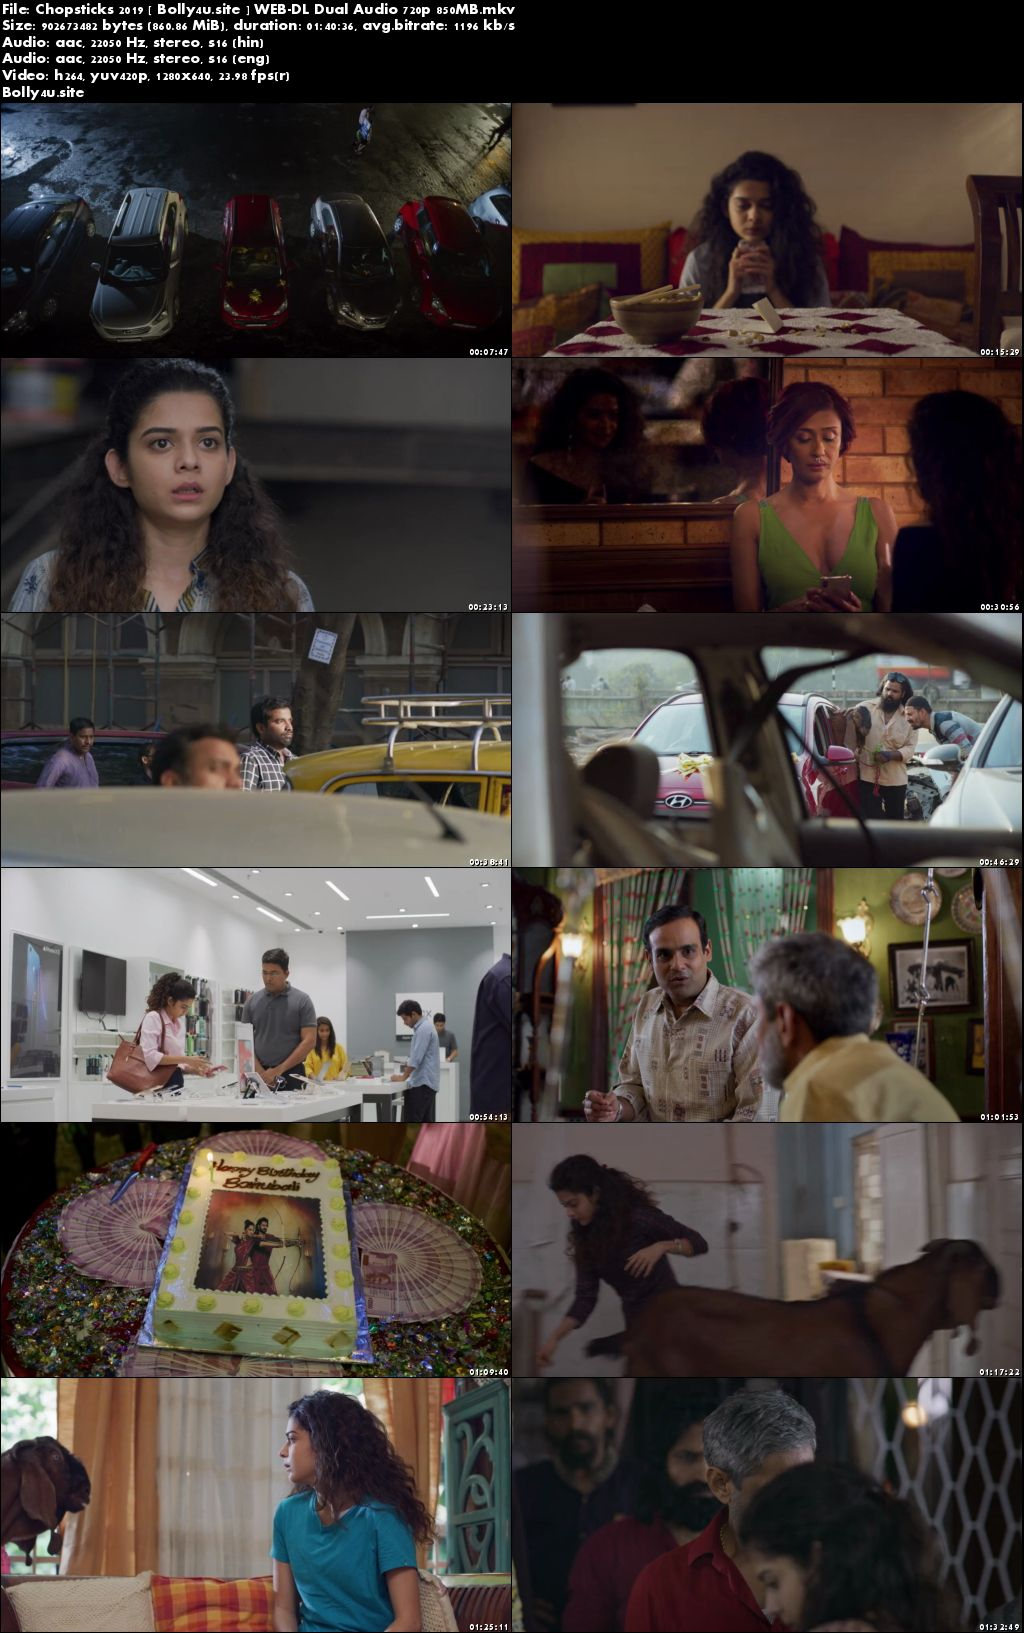 Chopsticks 2019 WEB-DL 300MB Hindi Dual Audio ORG 480p Download